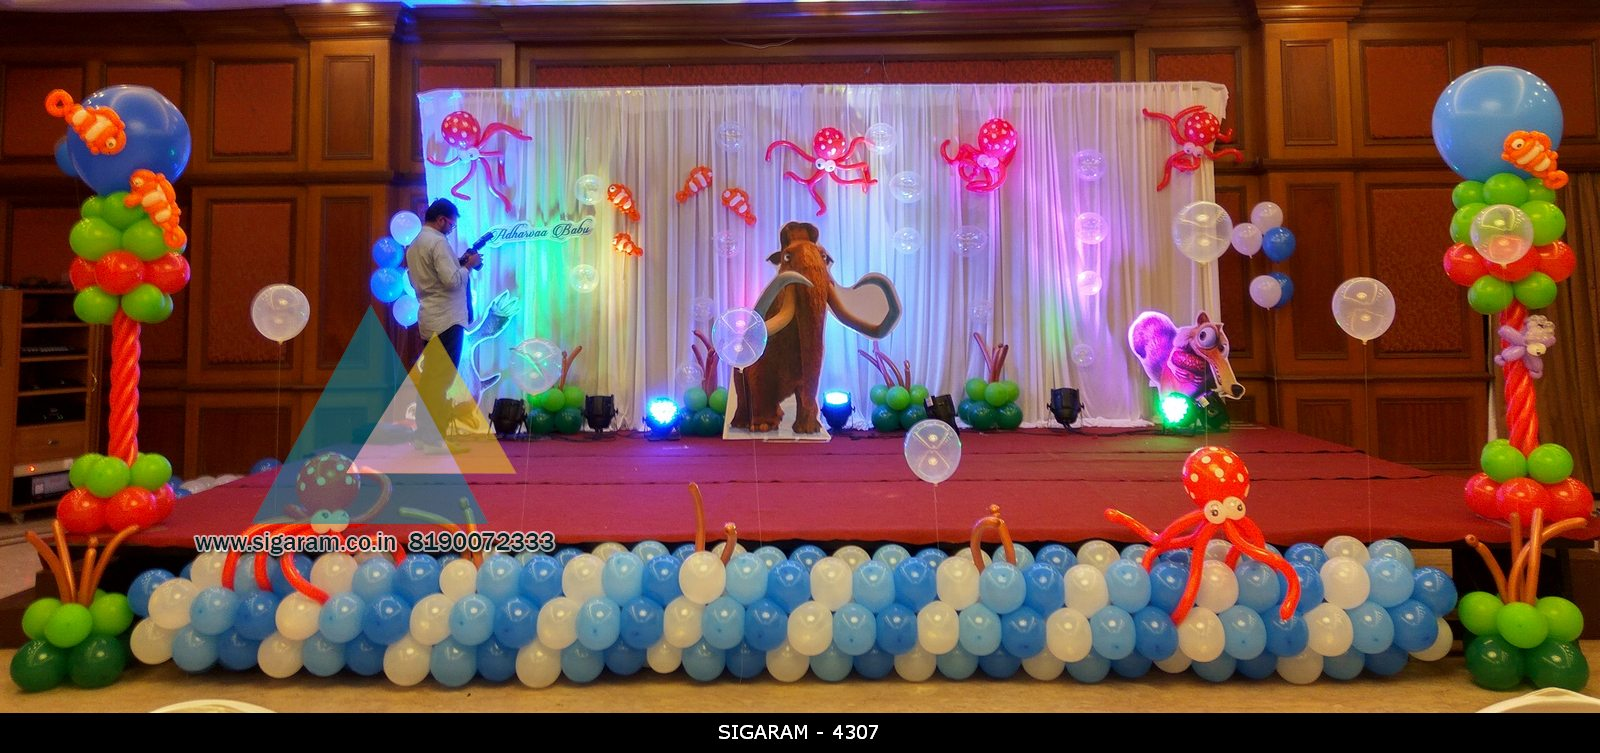 Themed birthday party decoration at hotel shenbaga for Decoration decoration